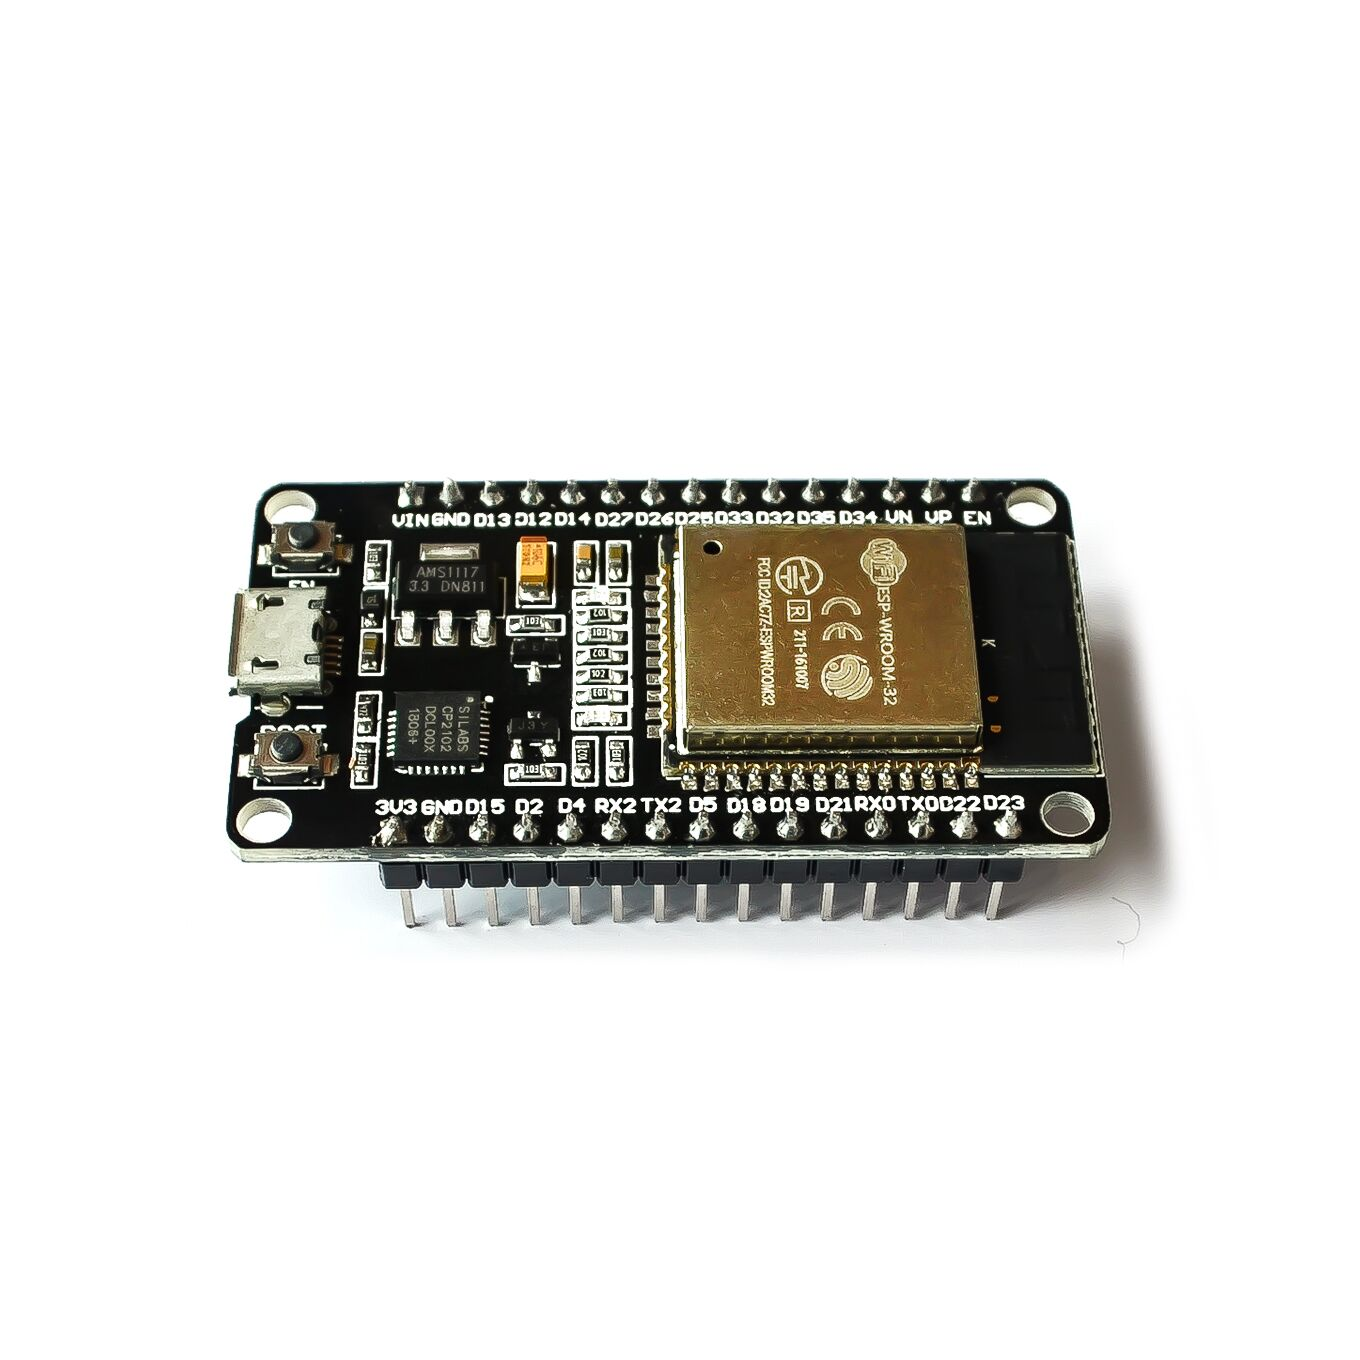 10PCS Official DOIT ESP32 Development Board WiFi+Bluetooth Ultra-Low Power Consumption Dual Core ESP-32S ESP 32 Similar ESP8266